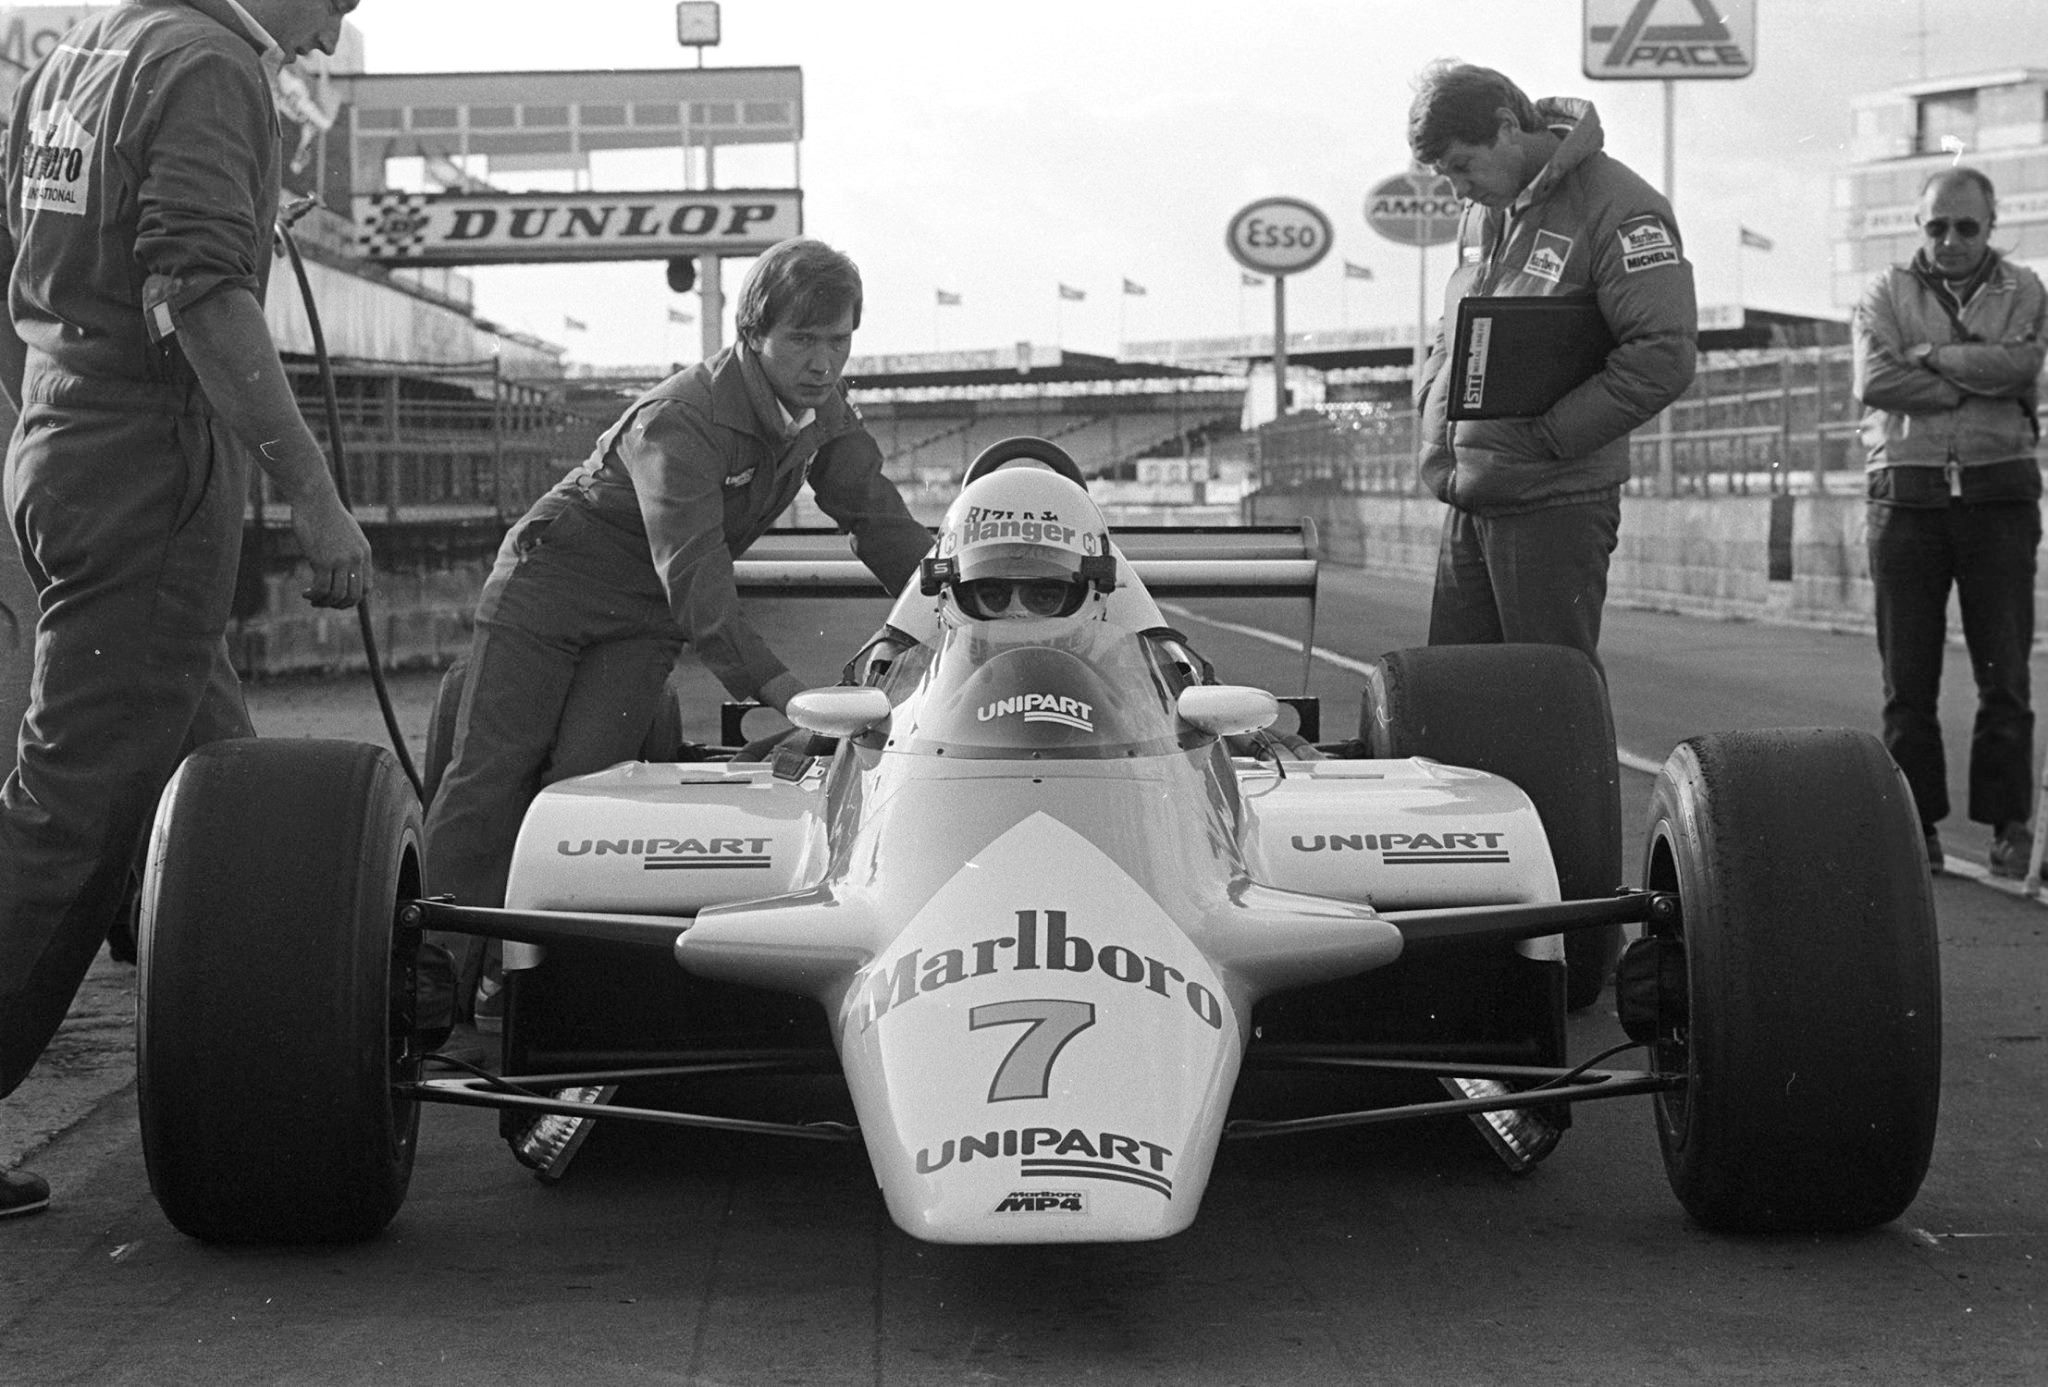 1982 Byrne Mclaren Test shot 2